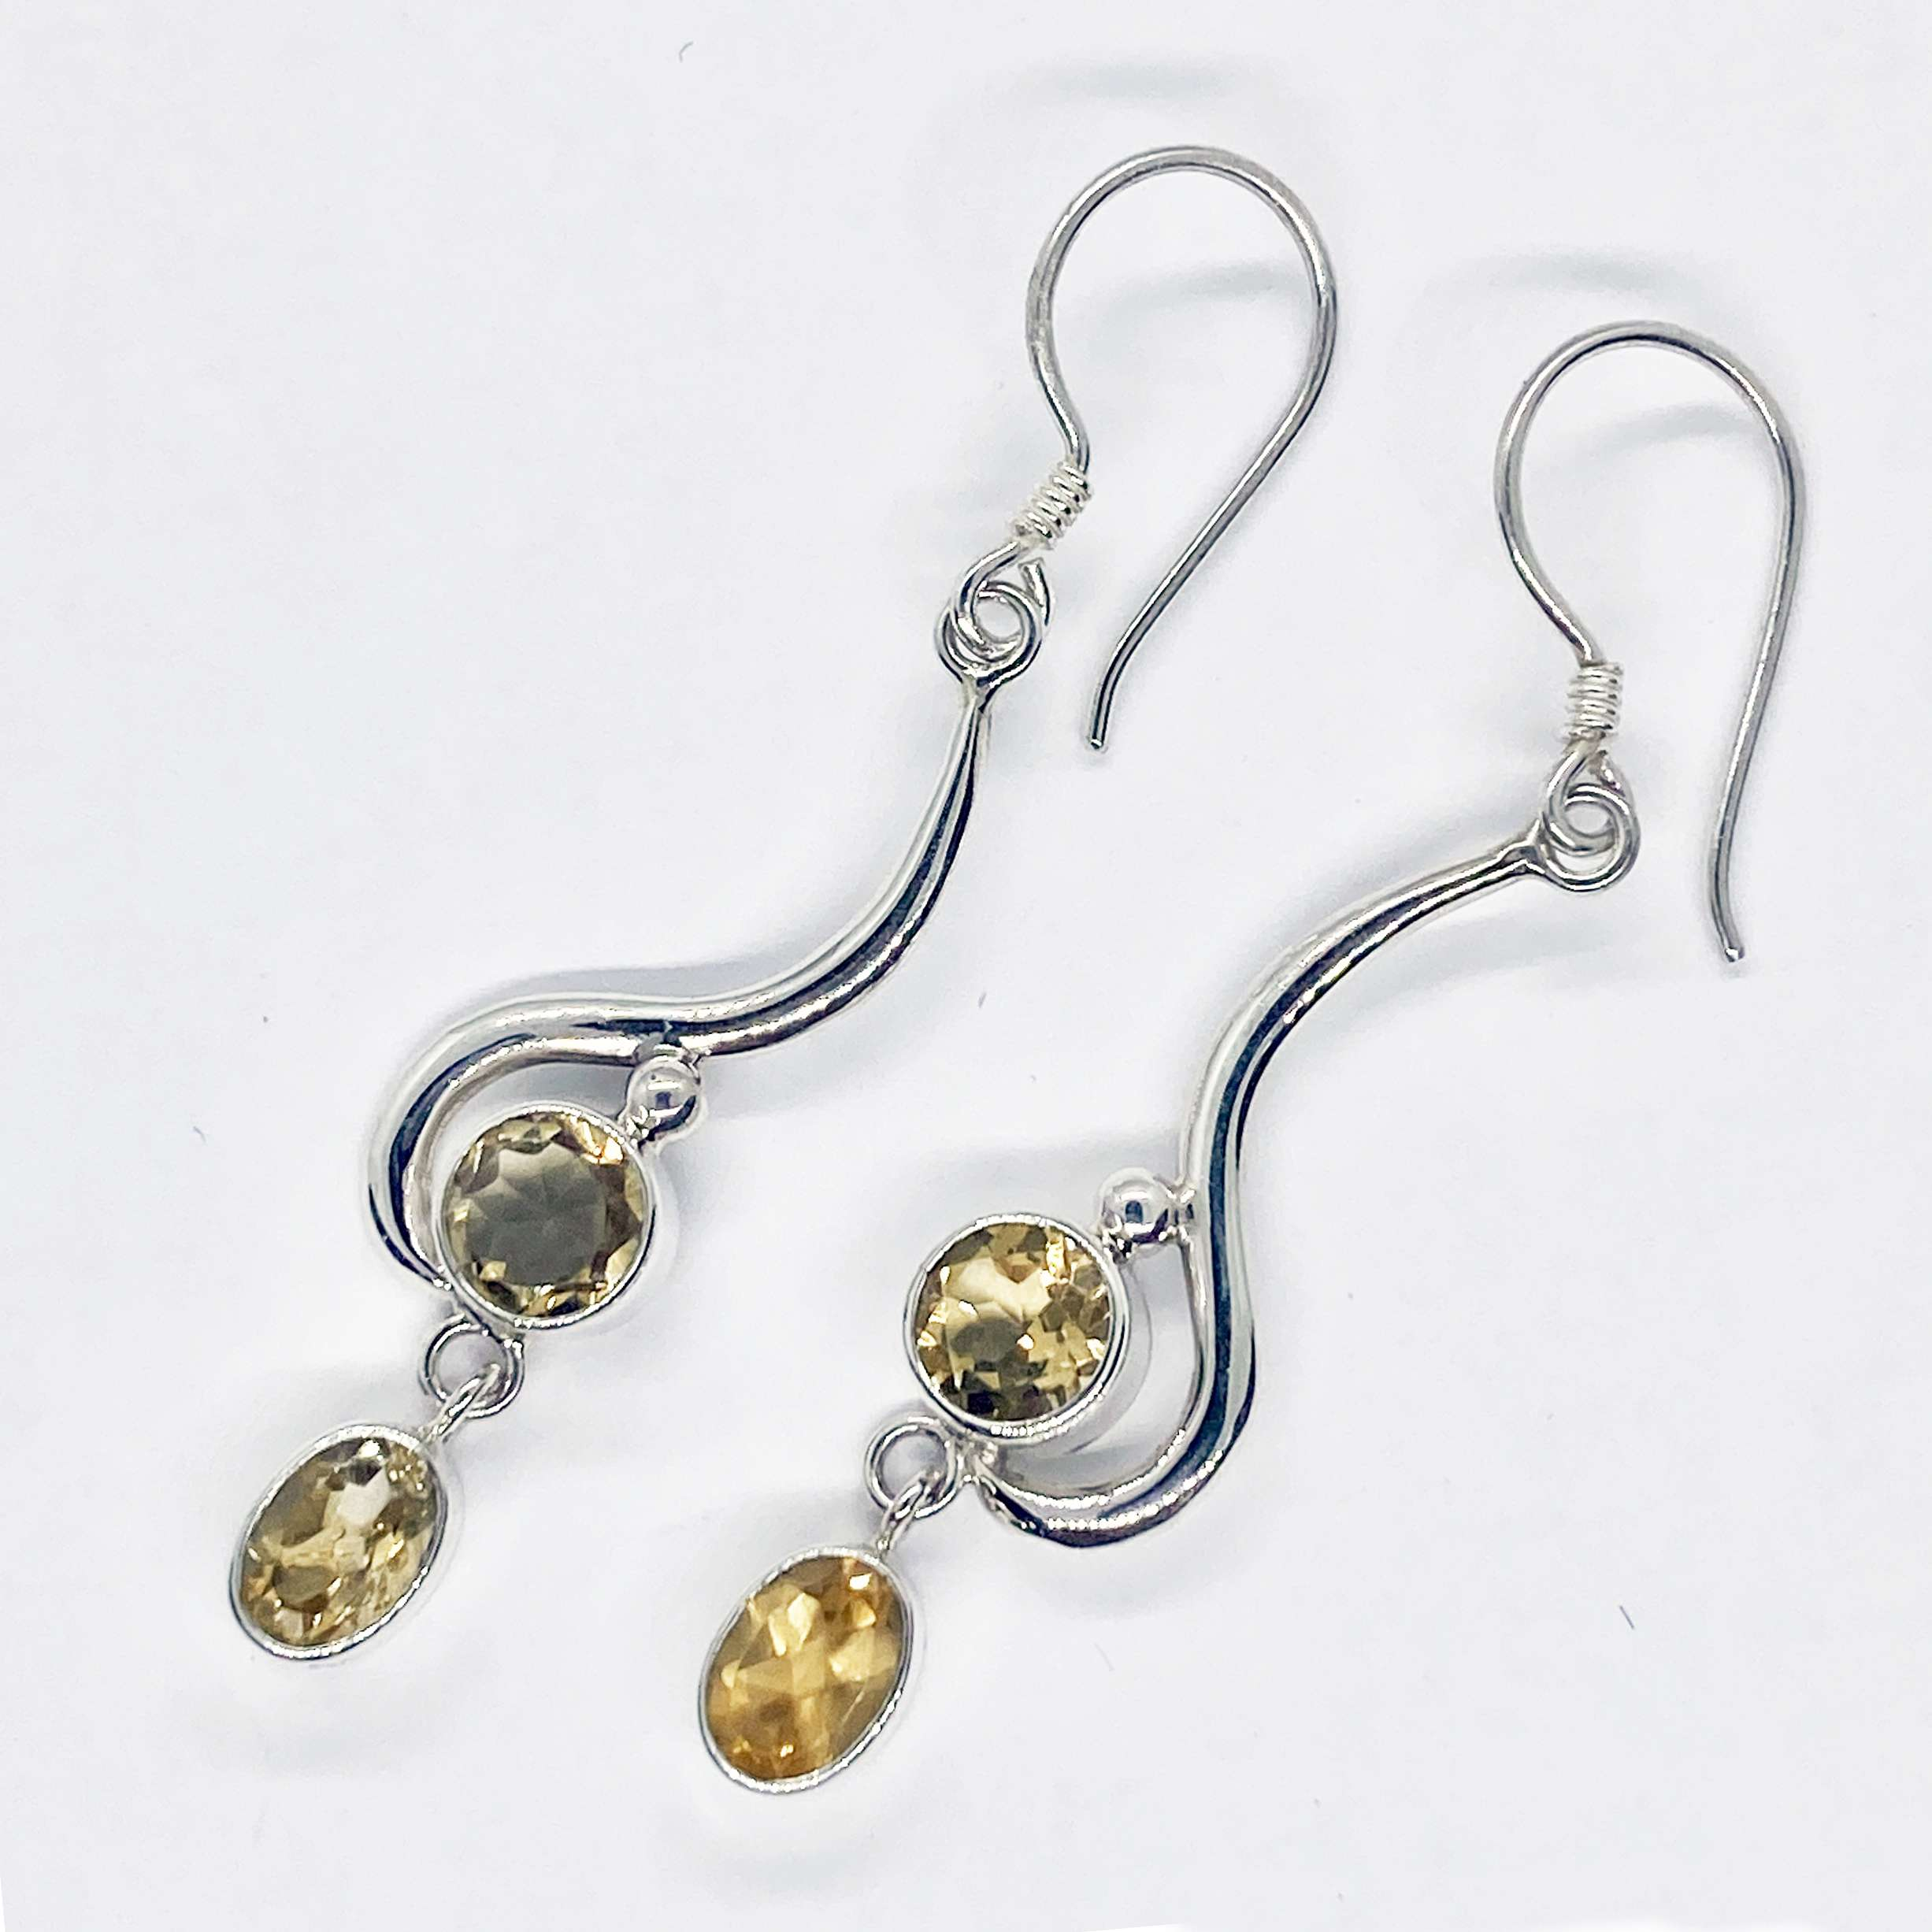 (HANDMADE 925 BALI SILVER EARRINGS WITH CITRINE)